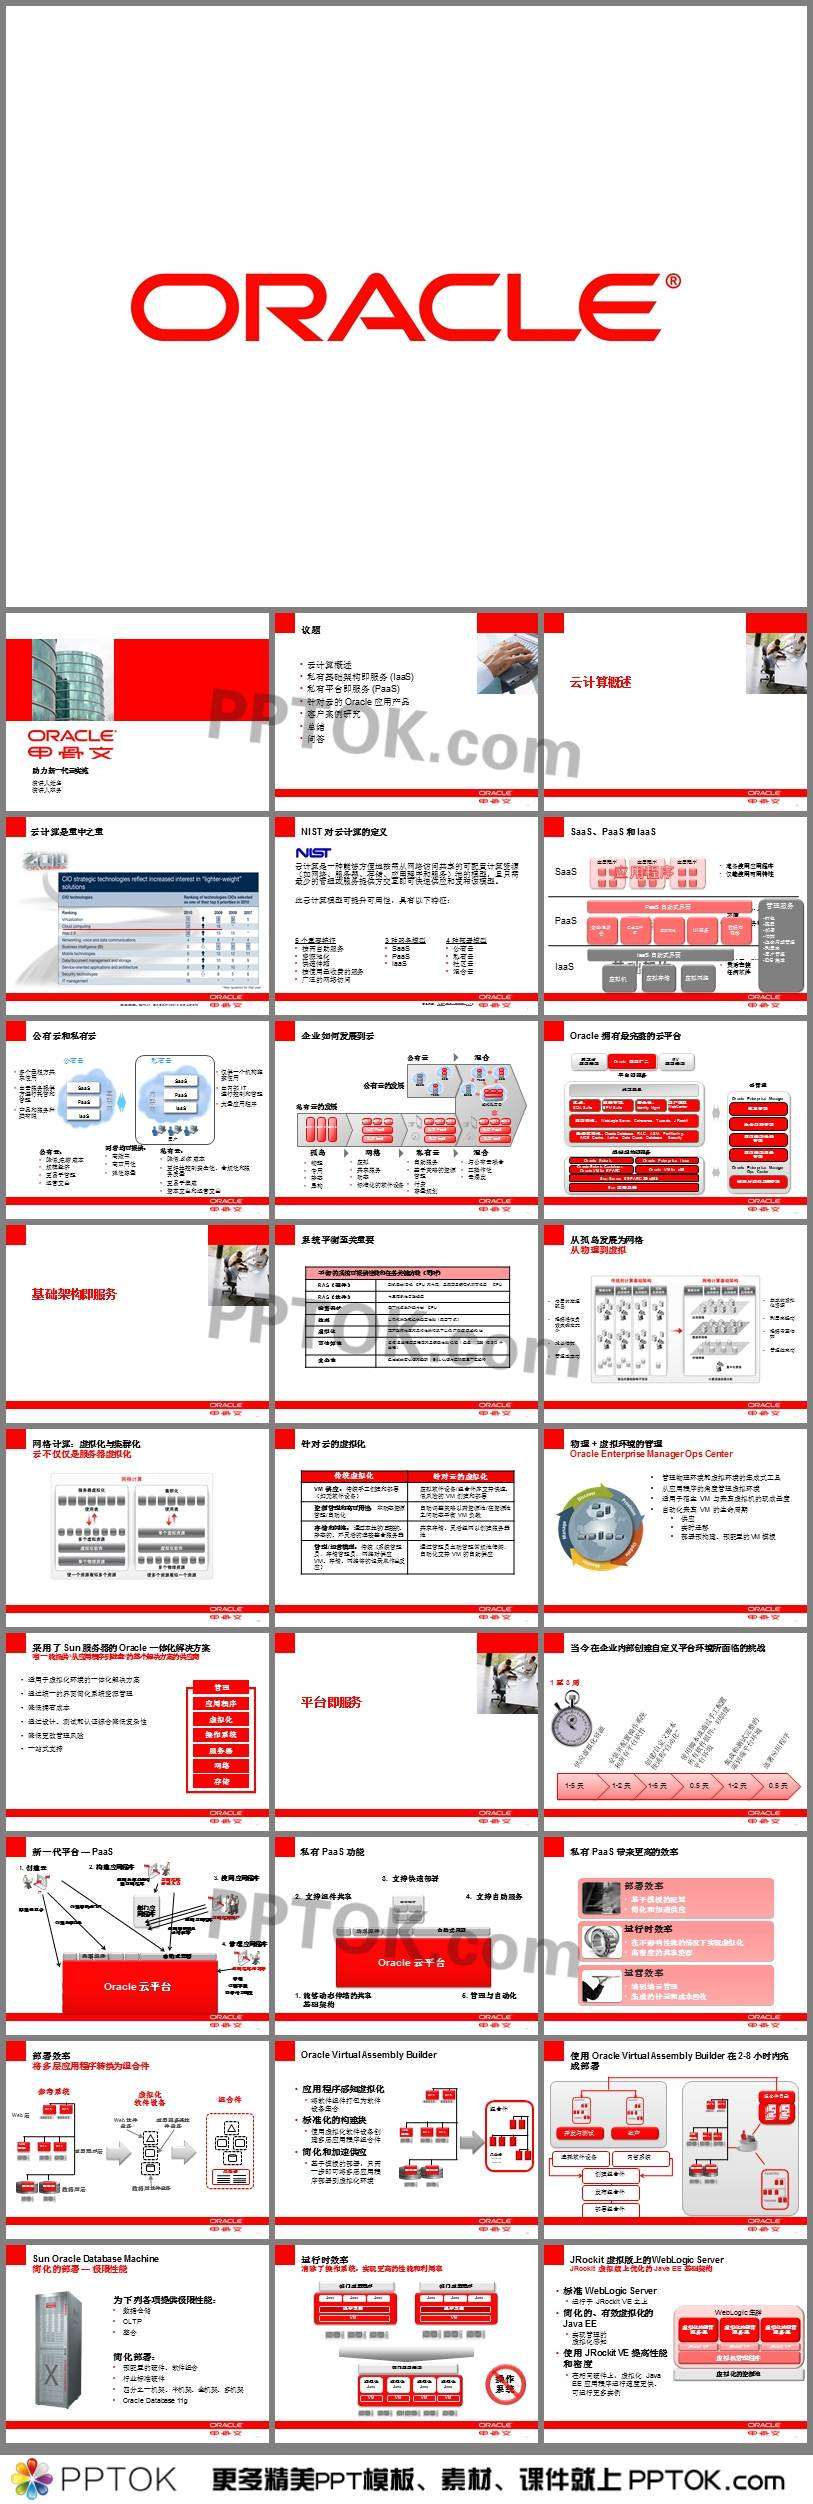 Oracle-云�算架��ppt